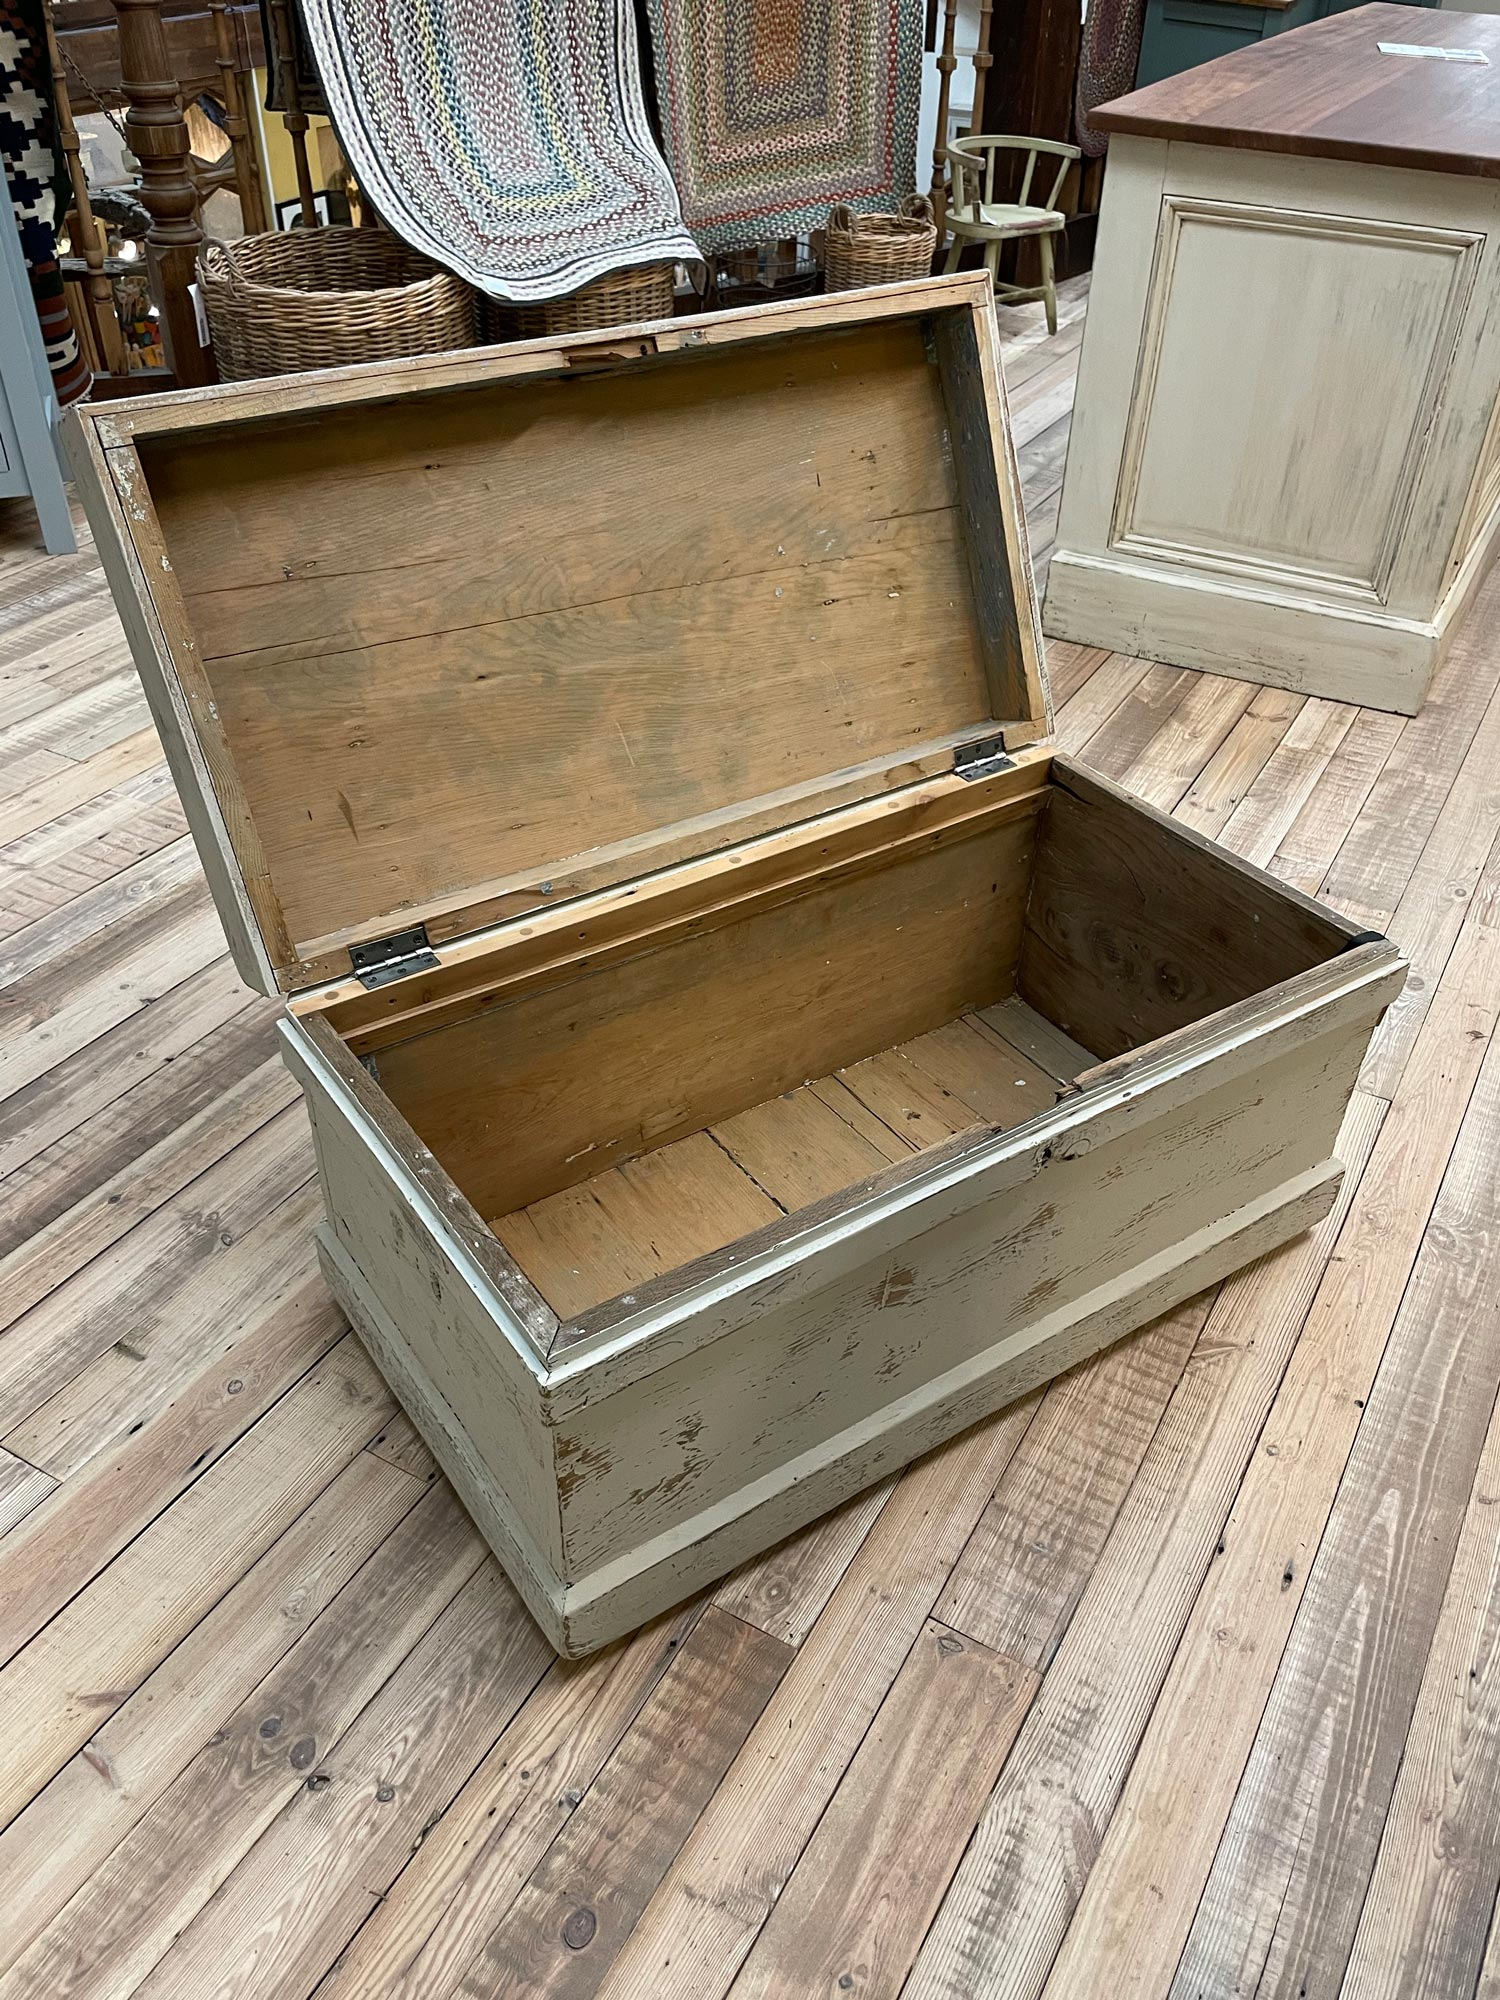 Toy chest open